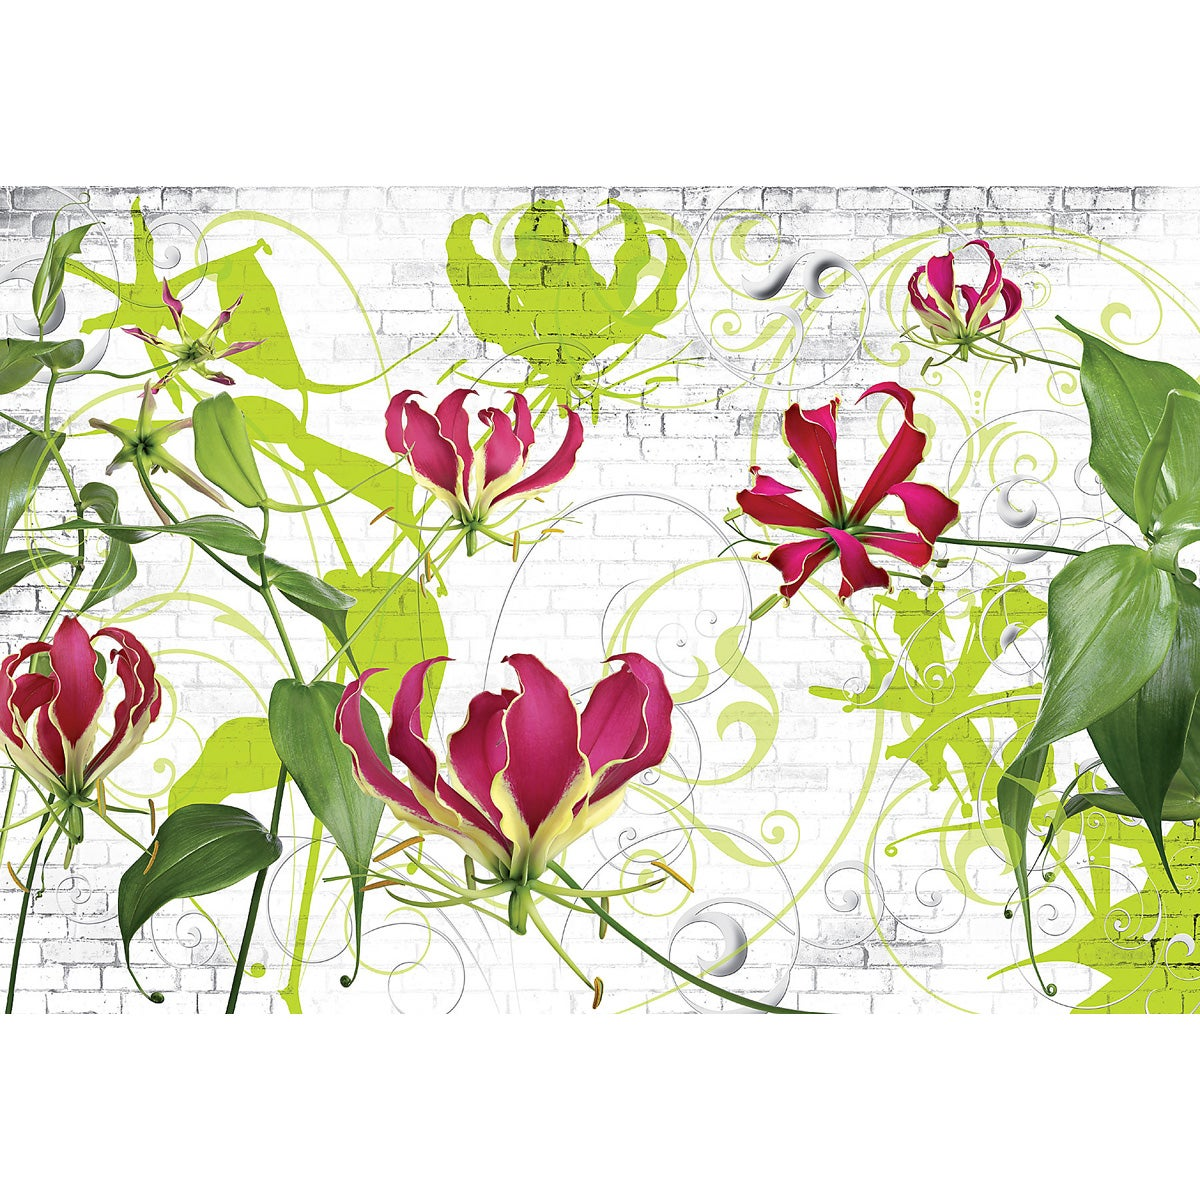 Komar 'Gloriosa' Vinyl Wall Mural at Sears.com